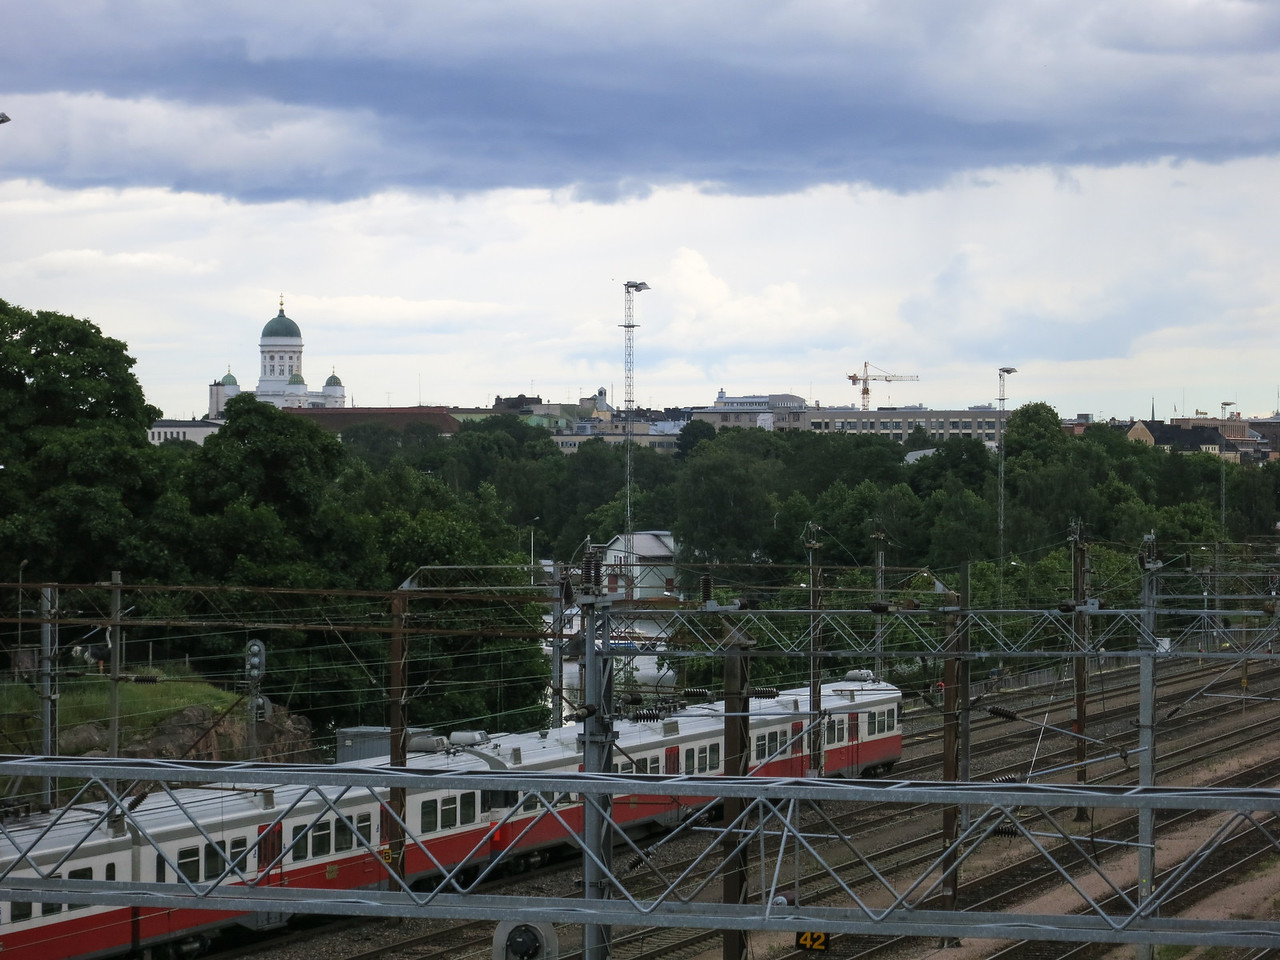 The Helsinki Lutheran Cathedral rises above the city.